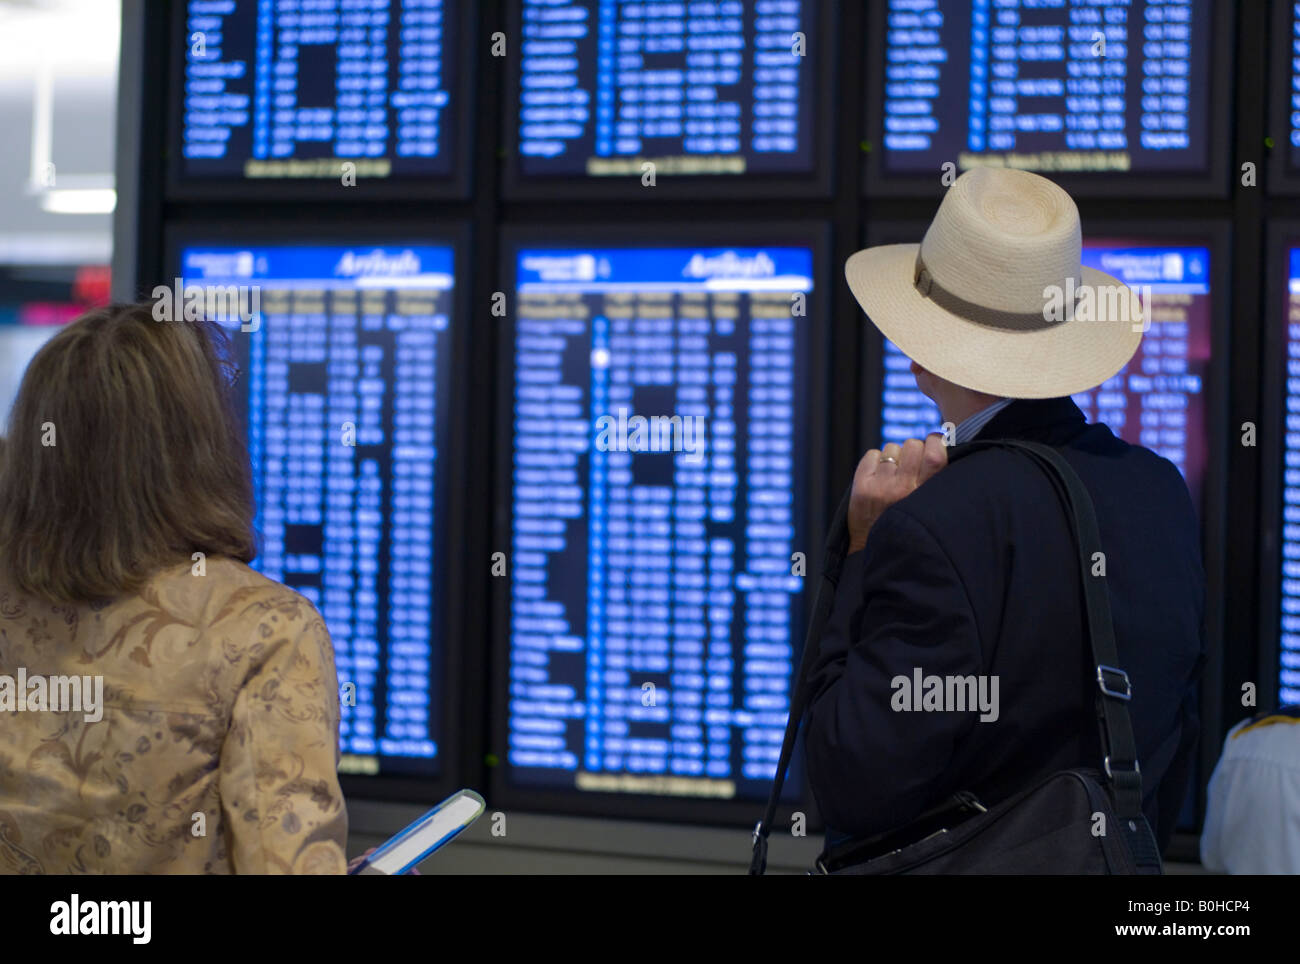 Airport Flight Information Screens Stock Photos Amp Airport